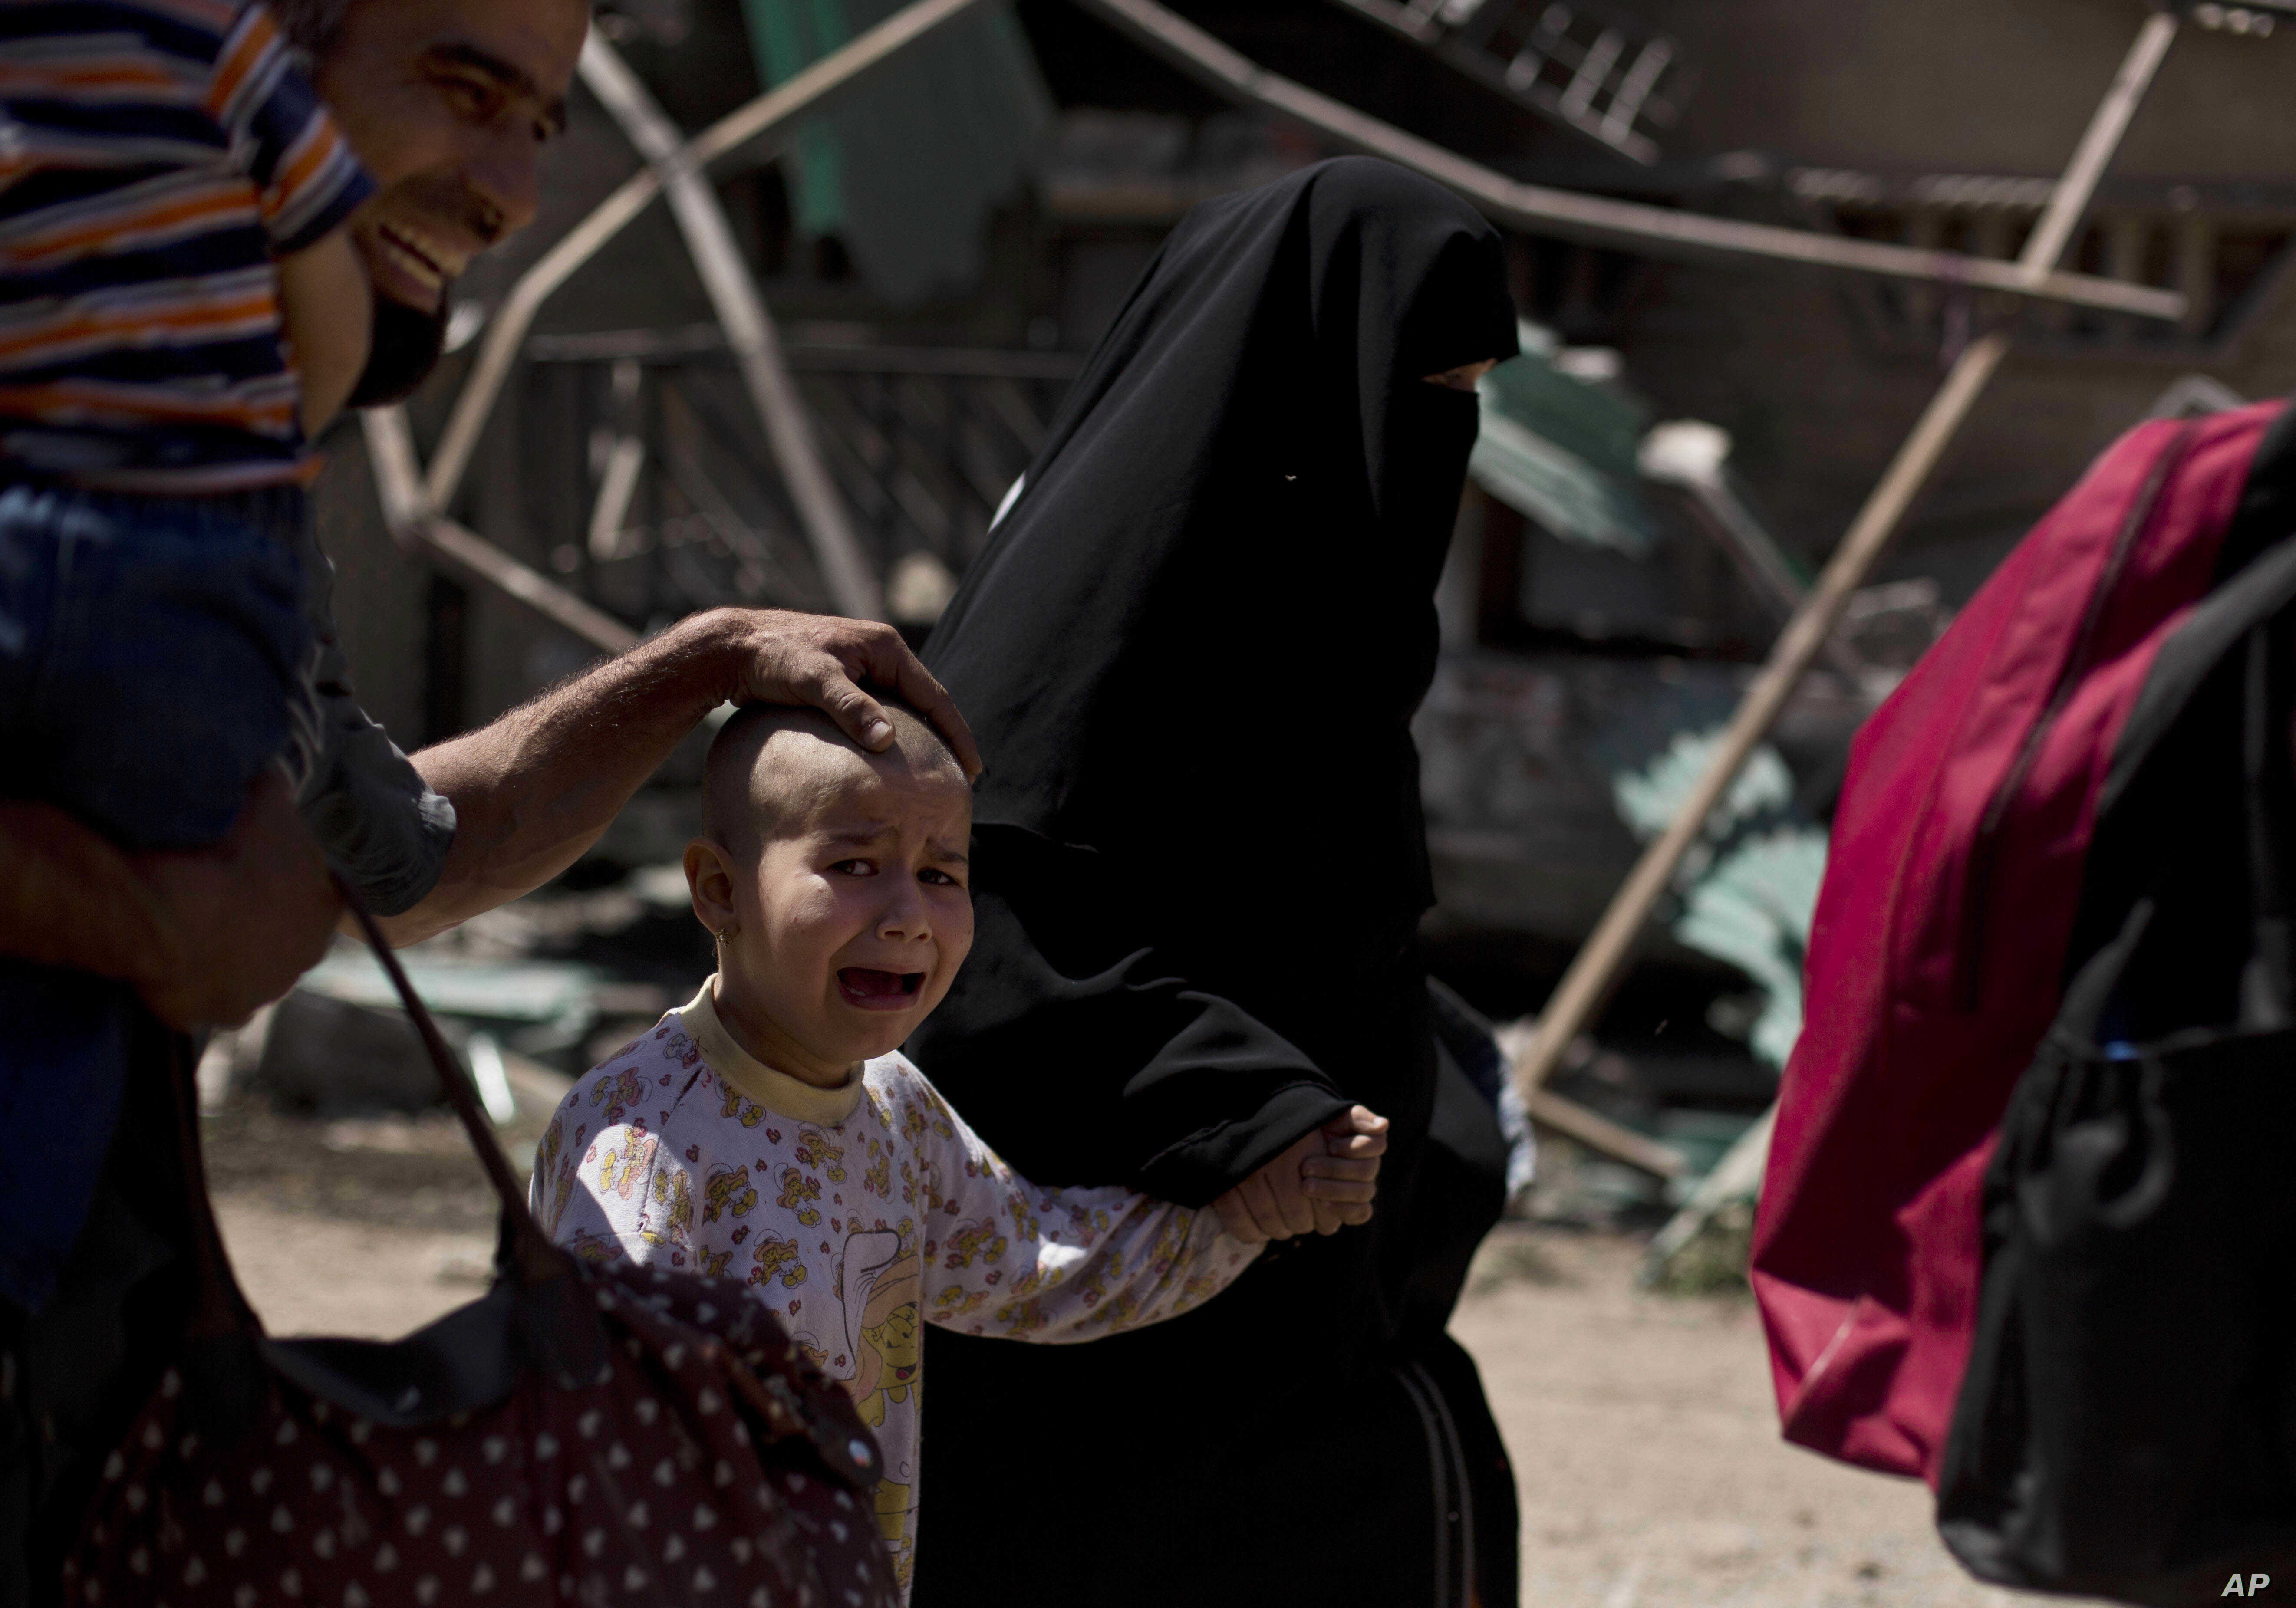 A girl with a shaved head and her father cry as the family flees the al-Rifai neighborhood while Iraqi special forces battle Islamic State militants in western Mosul, Iraq, May 17, 2017.